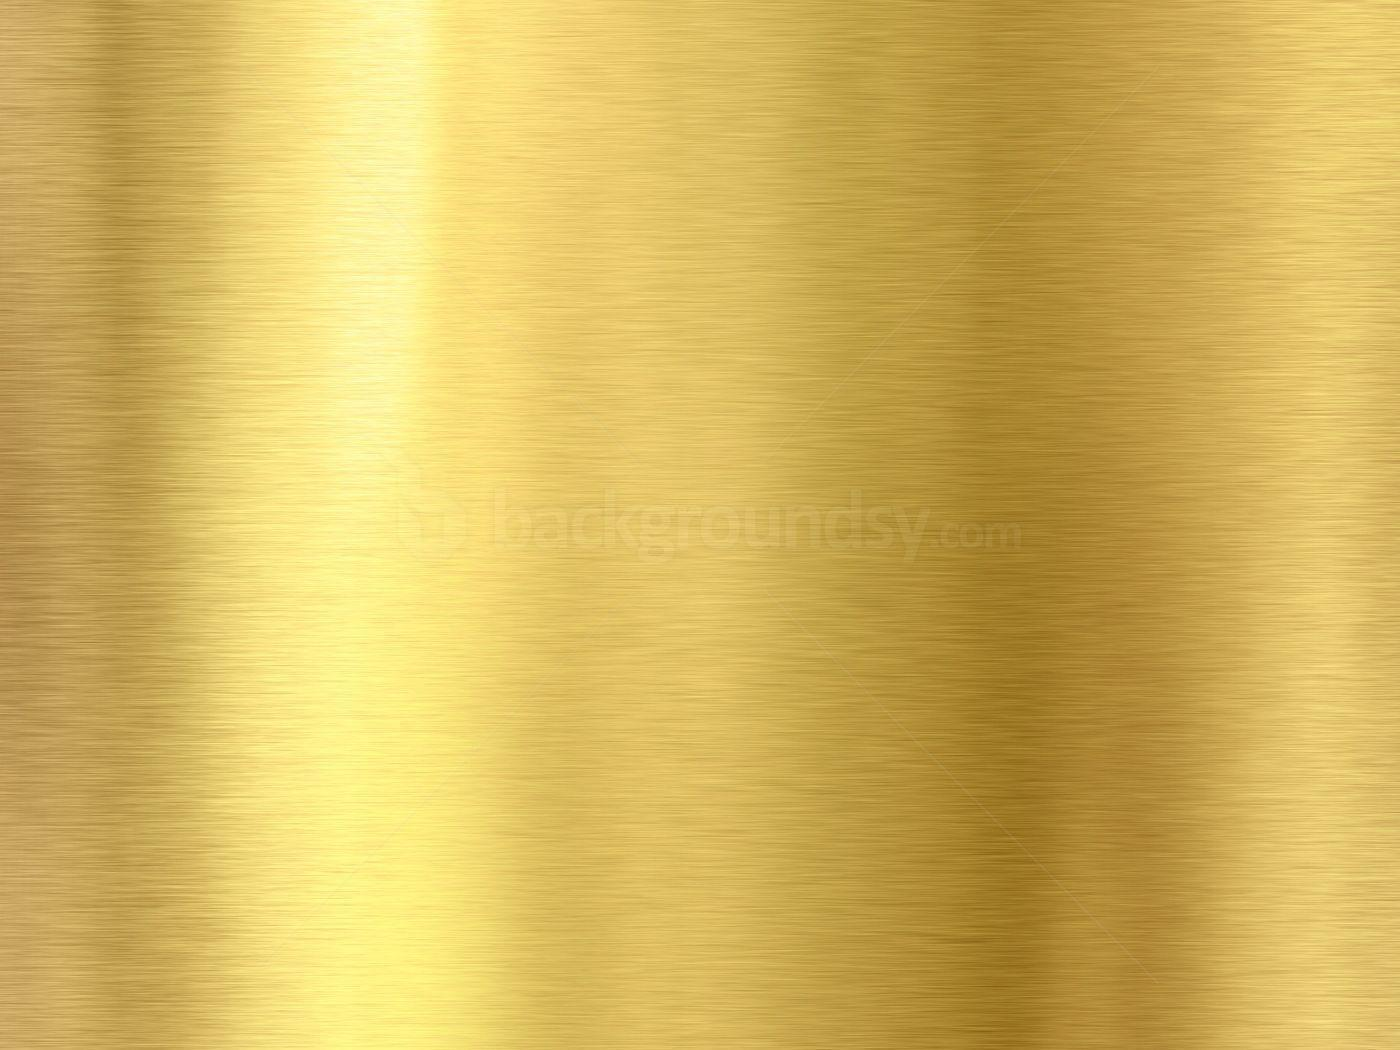 Gold Color Backgrounds 1400x1050